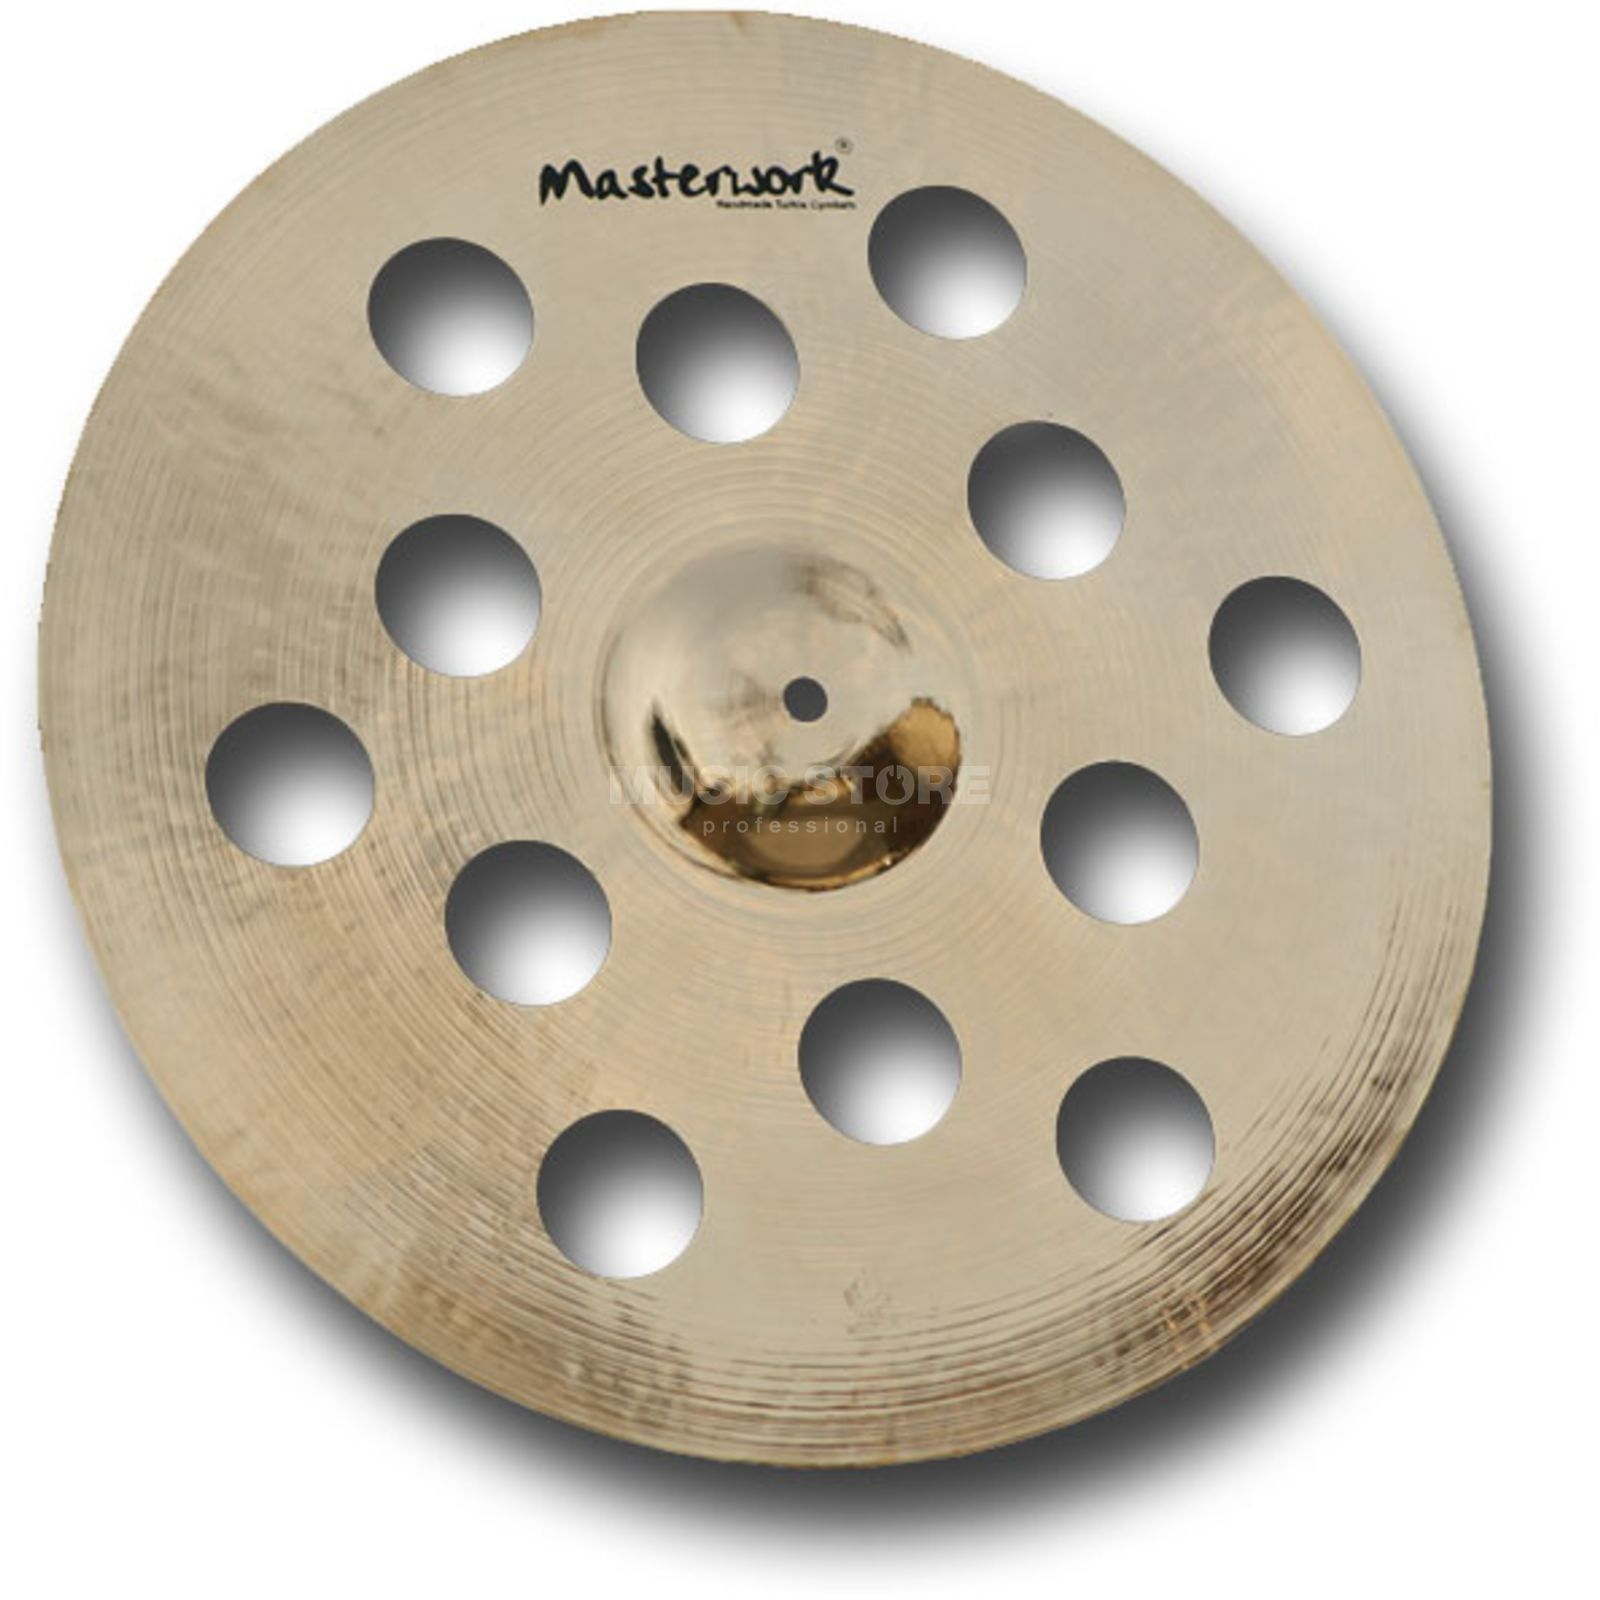 "Masterwork Resonant FX Crash 20"", Brilliant Finish Produktbild"